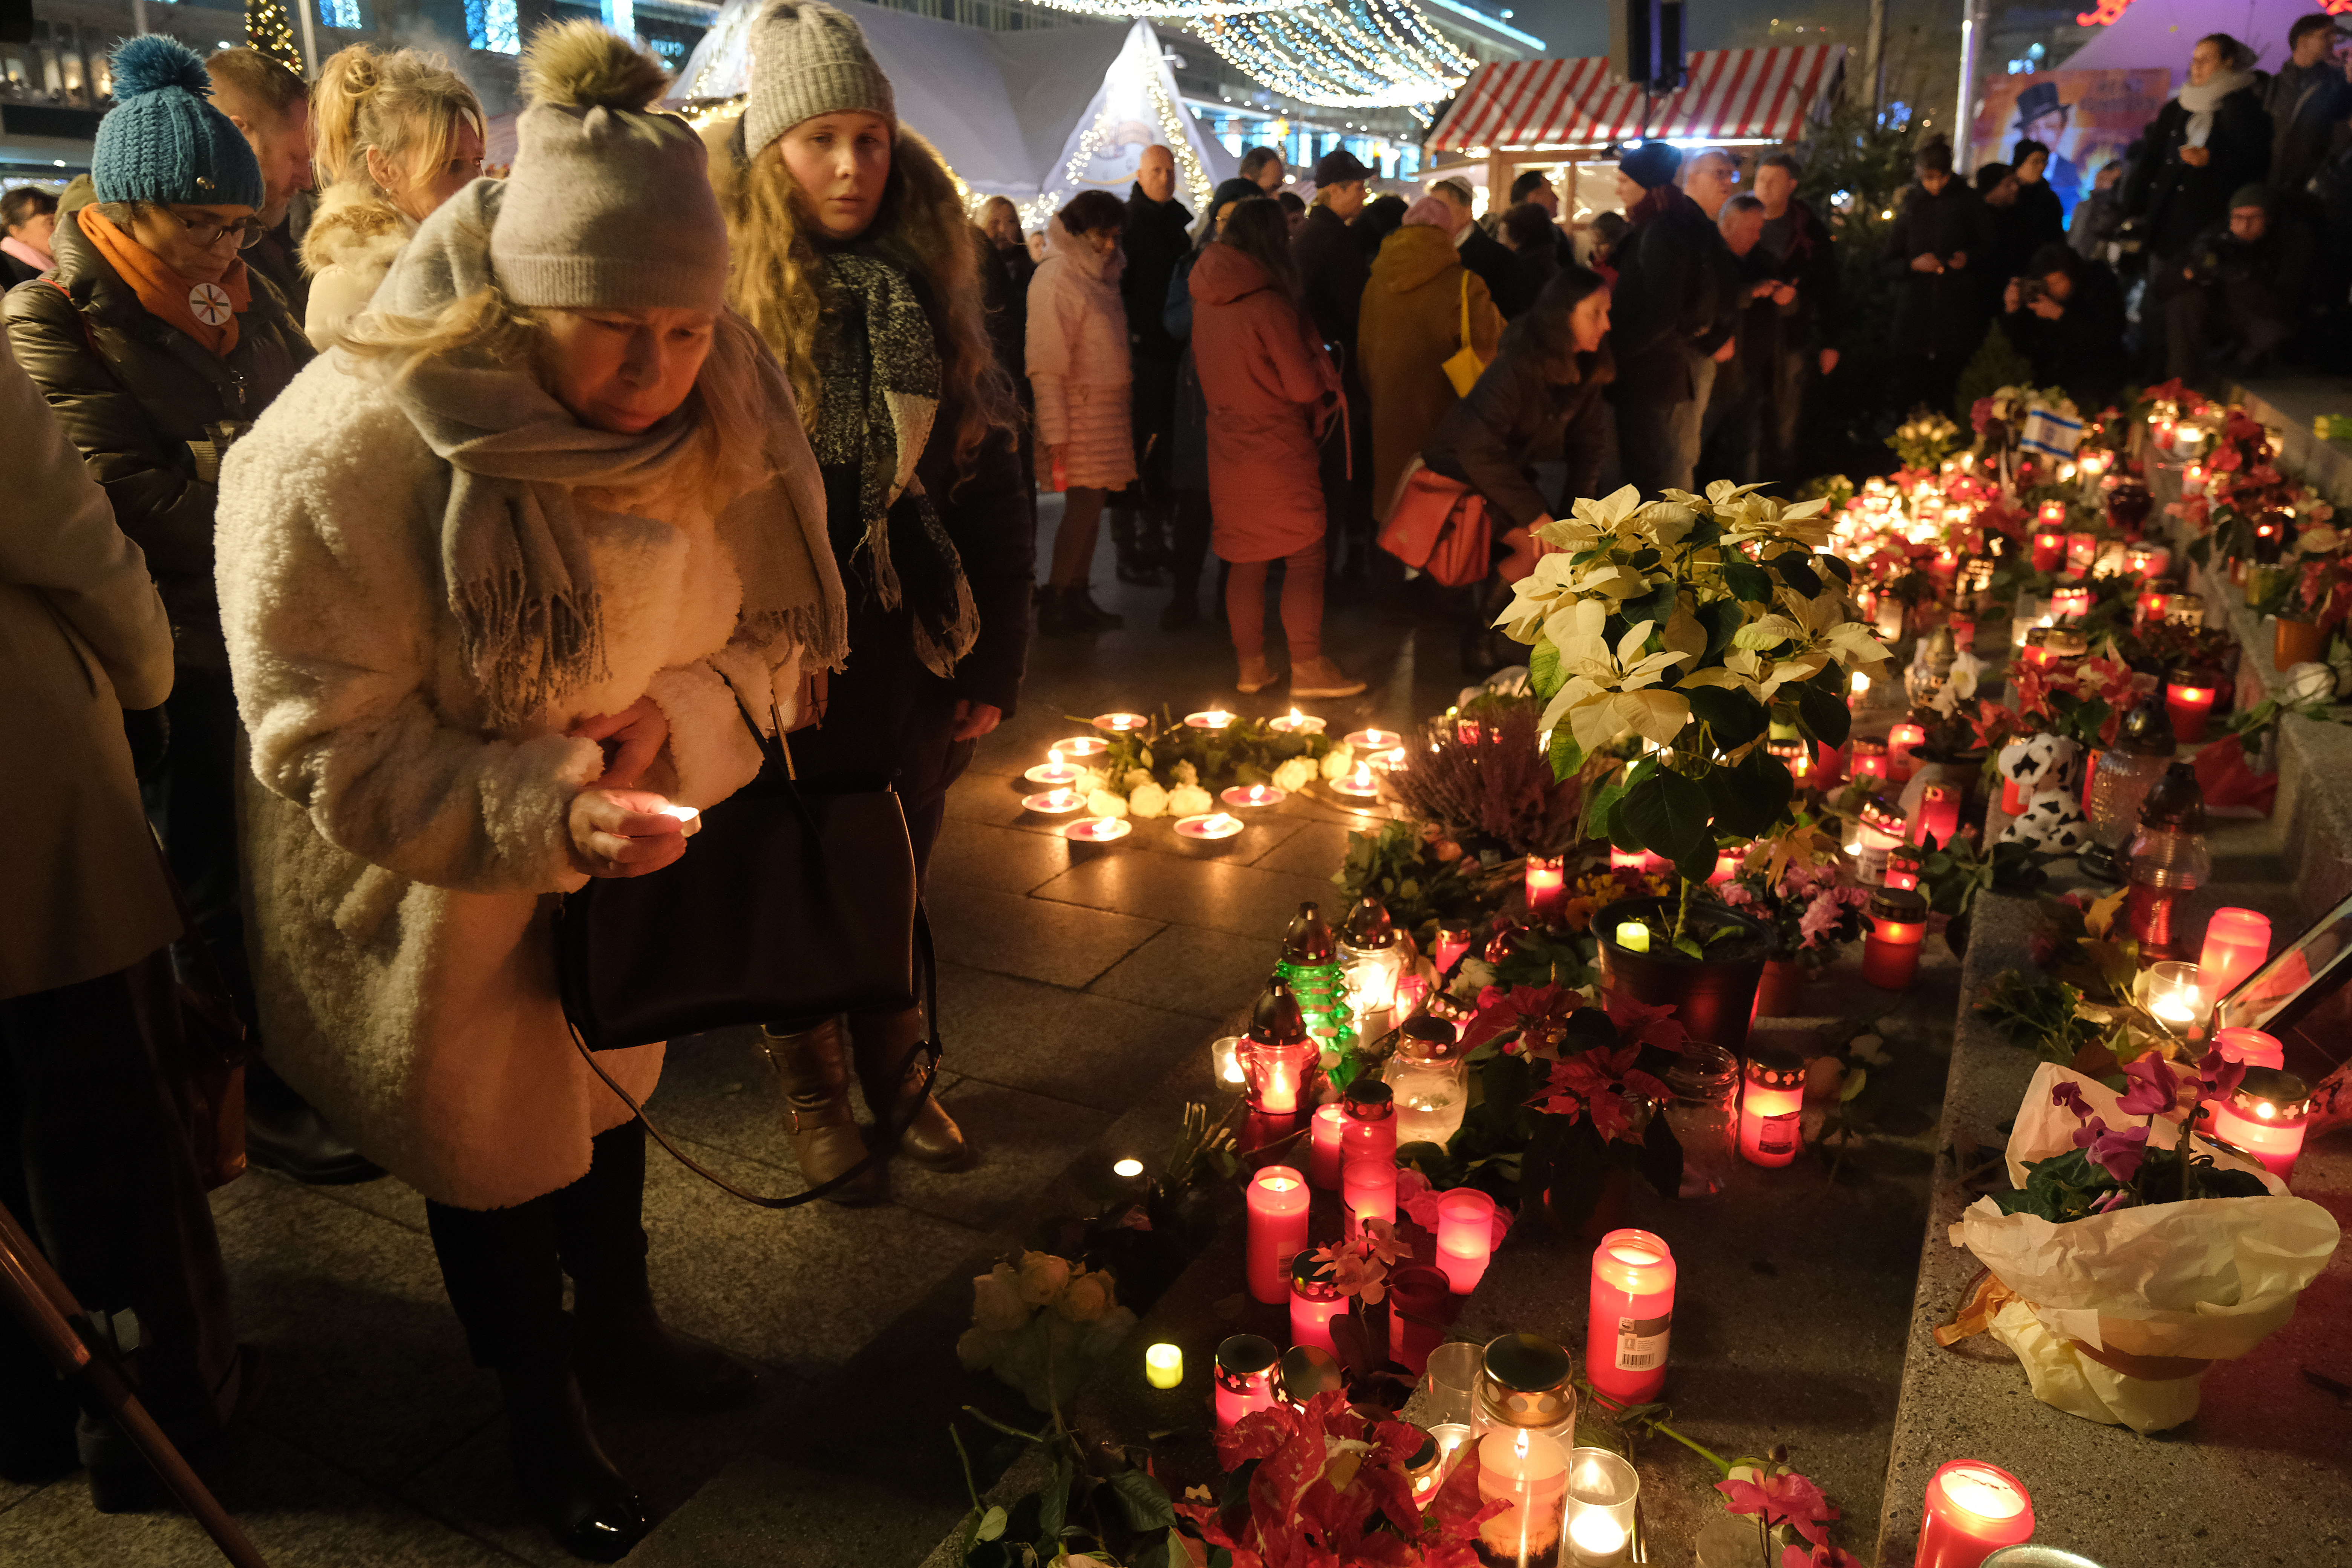 BERLIN, GERMANY - DECEMBER 19: Members of the public stand at the memorial to commemorate the 2016 Christmas market terror attack at Breitscheidplatz shortly after an official ceremony on the third anniversary of the attack on December 19, 2019 in Berlin, Germany. (Photo by Sean Gallup/Getty Images)